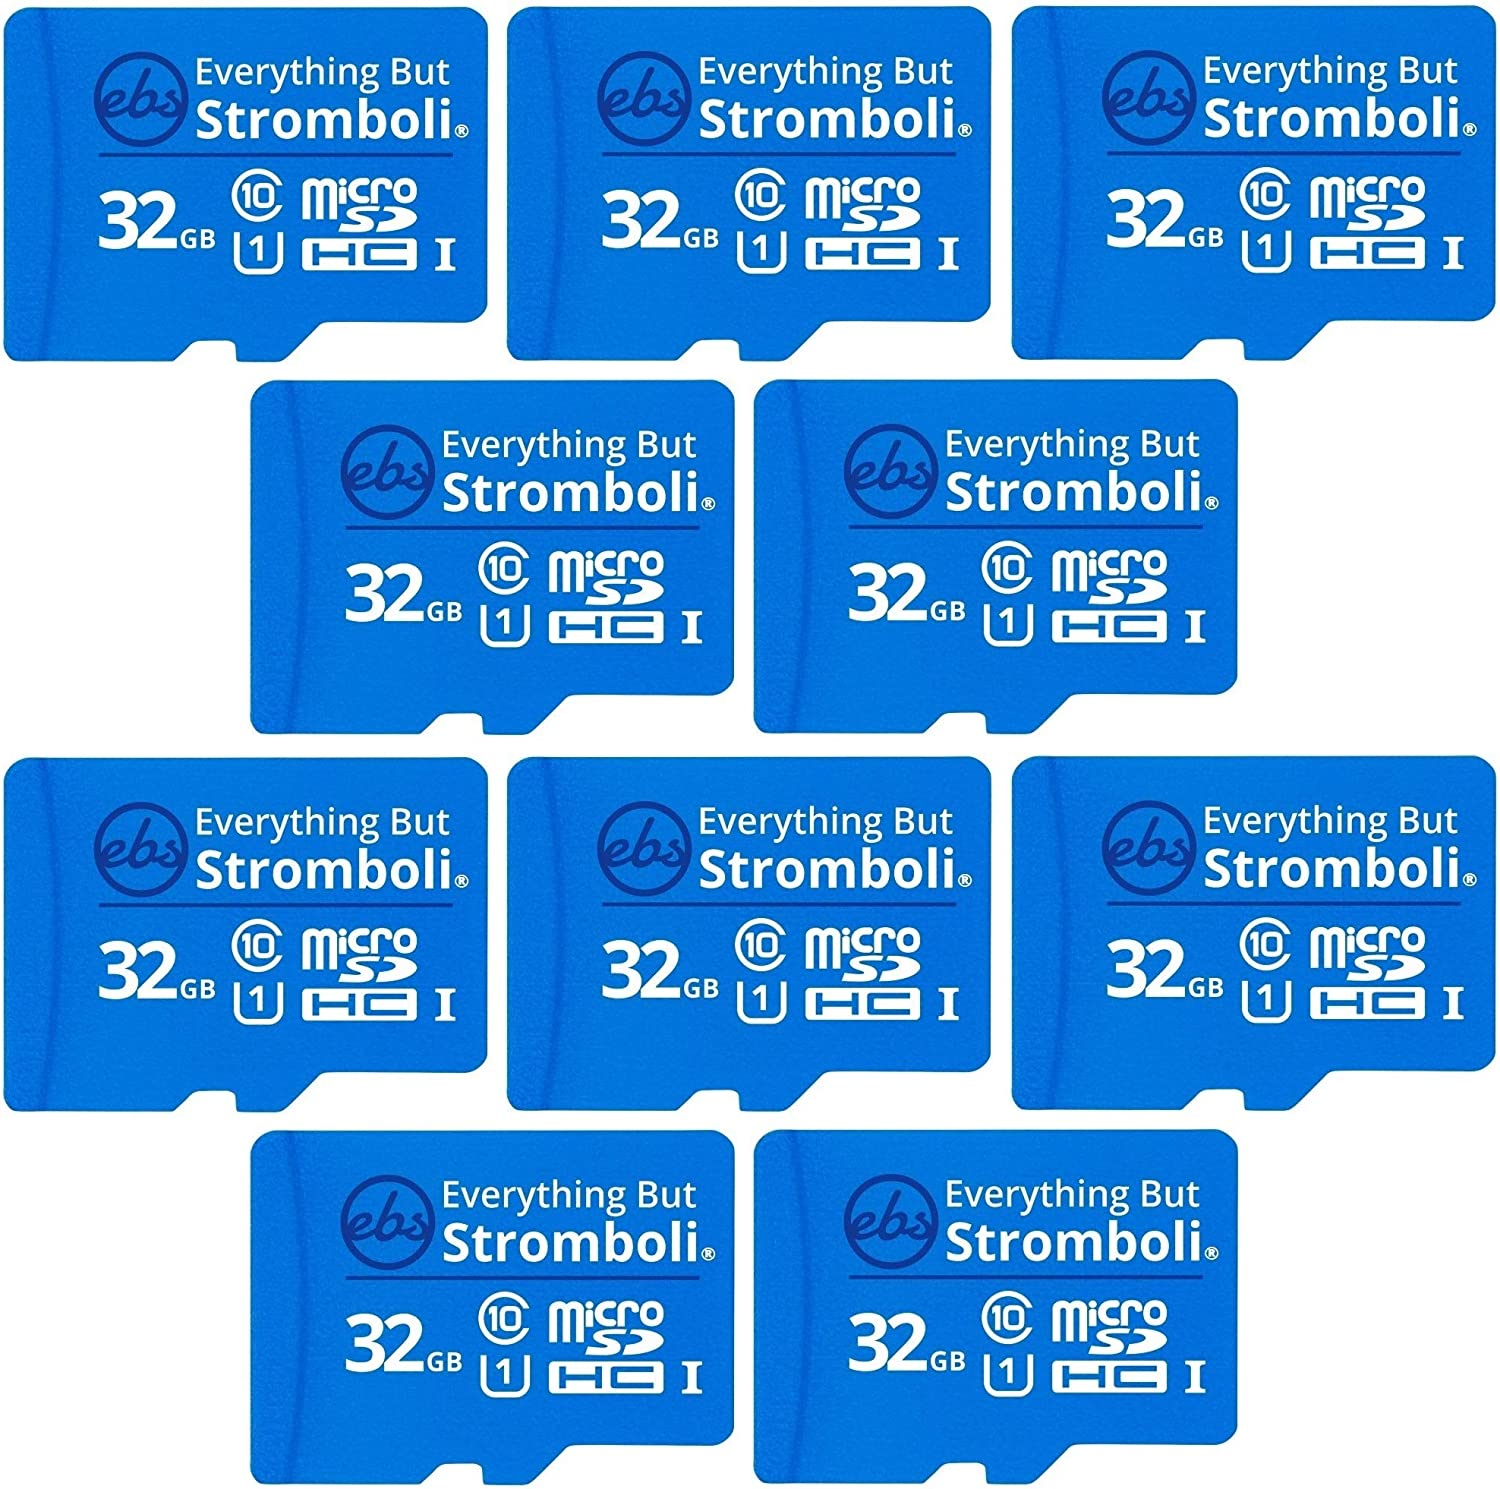 Everything But Stromboli 32GB MicroSD Memory Card Plus Adapter (10 Pack) Class 10, U1, UHS-1, TF Bulk Micro SD Cards for Compatible Dash Cam, GPS, Home Security Cam, Computer, Raspberry Pi, GPS Device